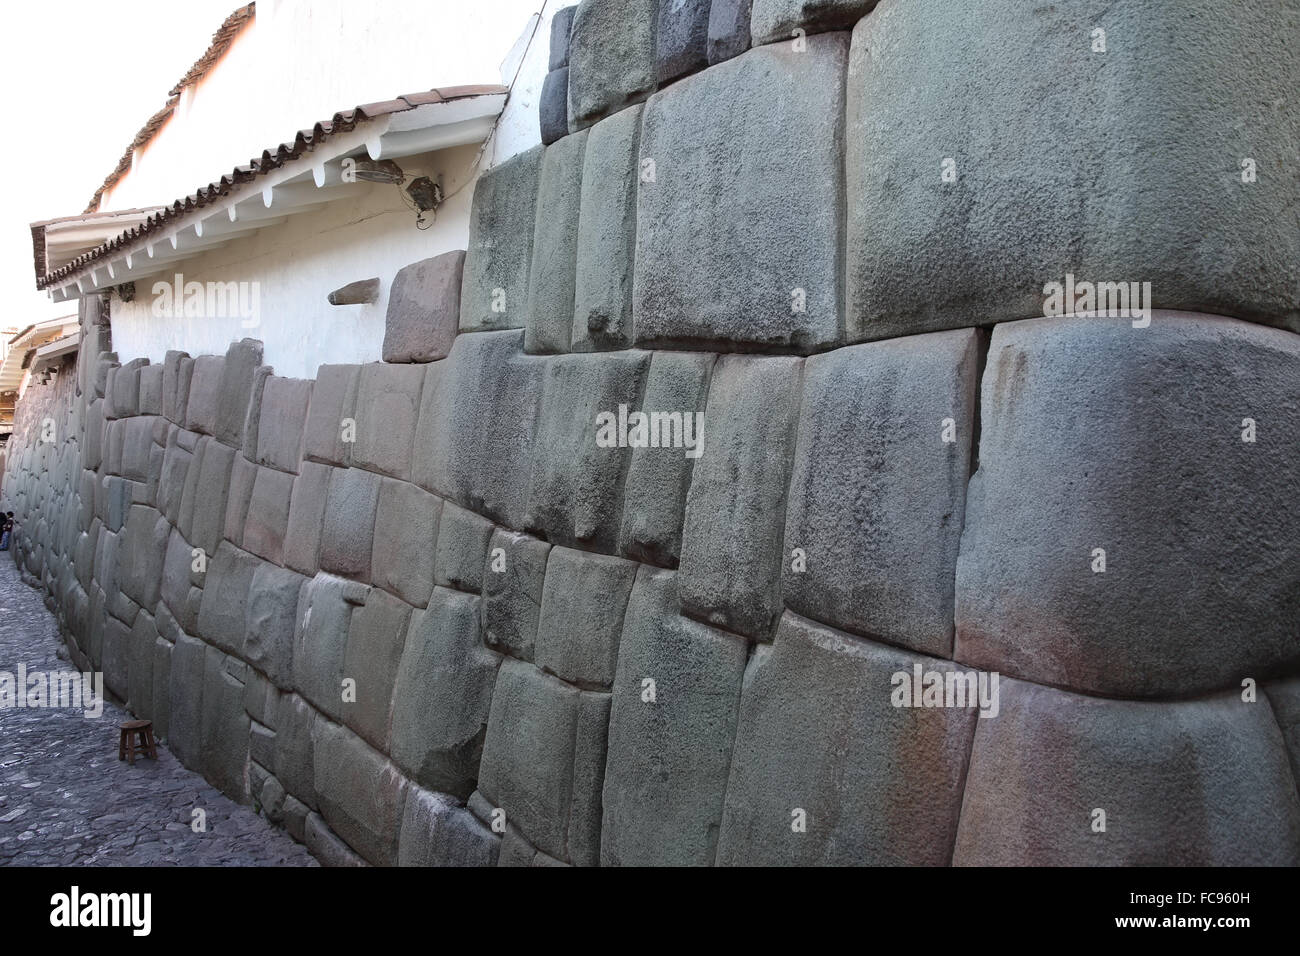 Wall of house made up of part Inca craftmanship and part Spanish workmanship, Cuzco, Peru, South America - Stock Image